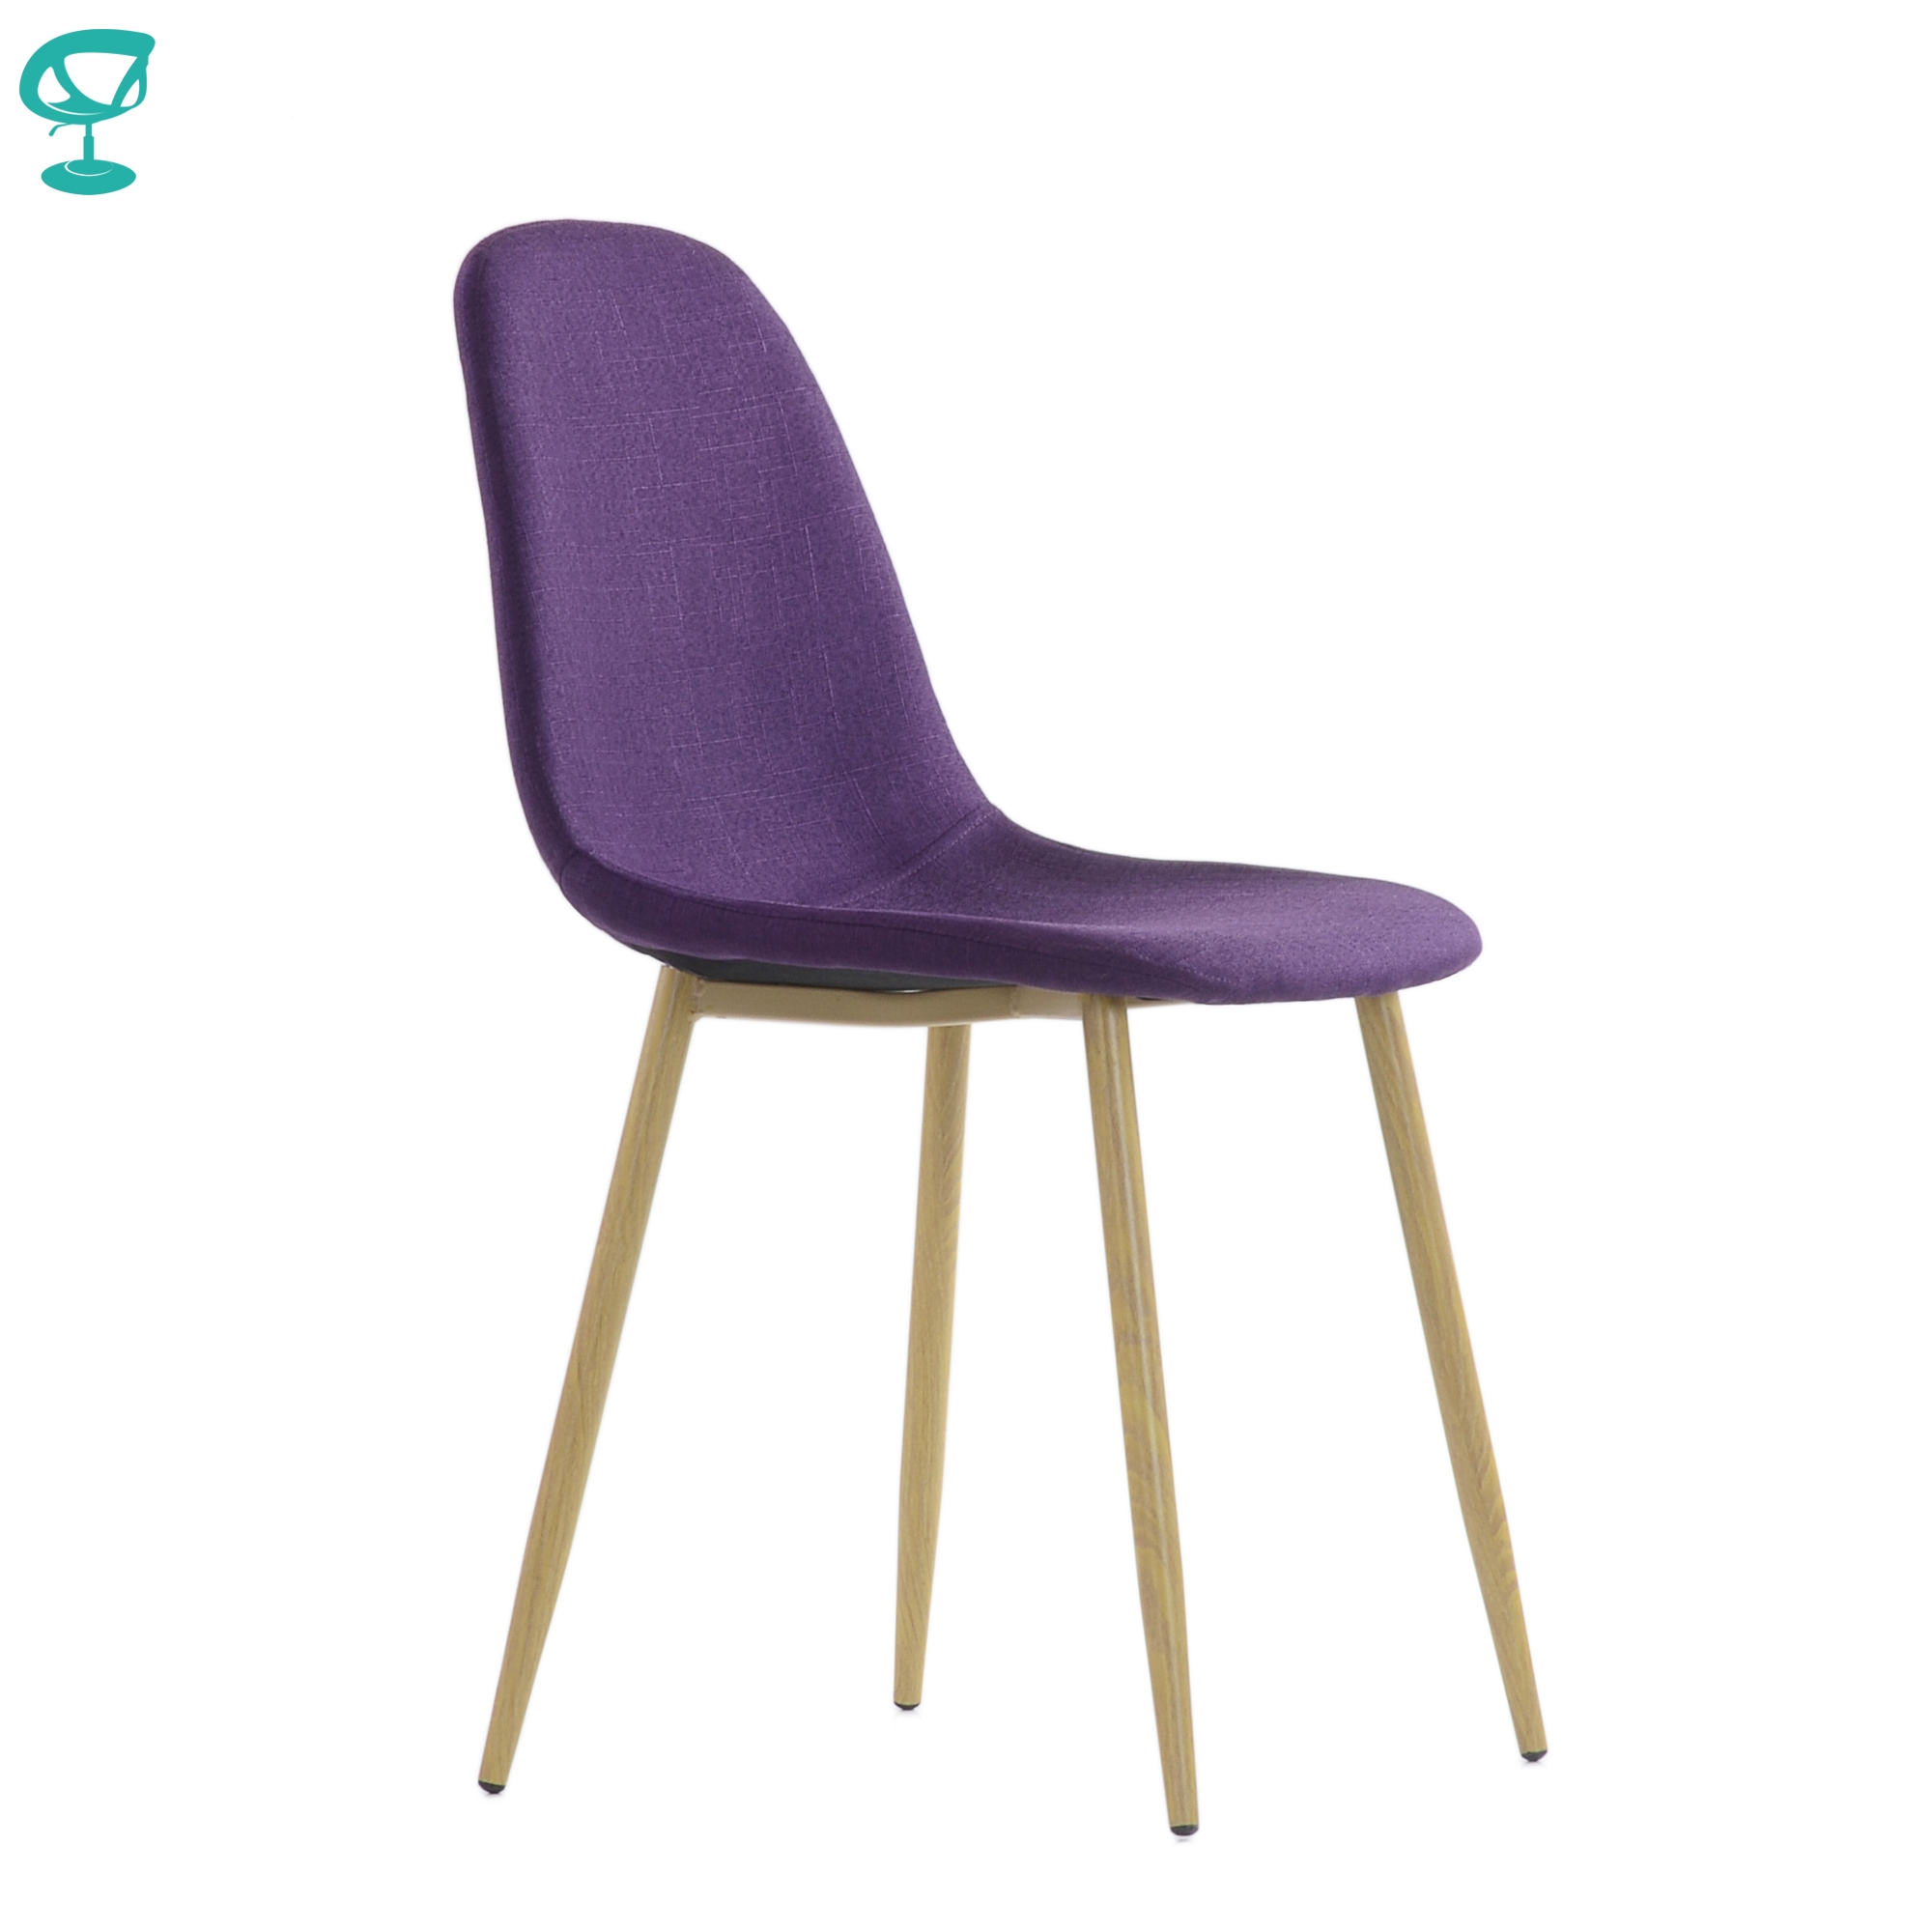 95746 Barneo S-15 Kitchen Chair Legs Metal Seat Fabric Chair For Living Room Chair Dining Chair Table Chair Furniture For Kitchen